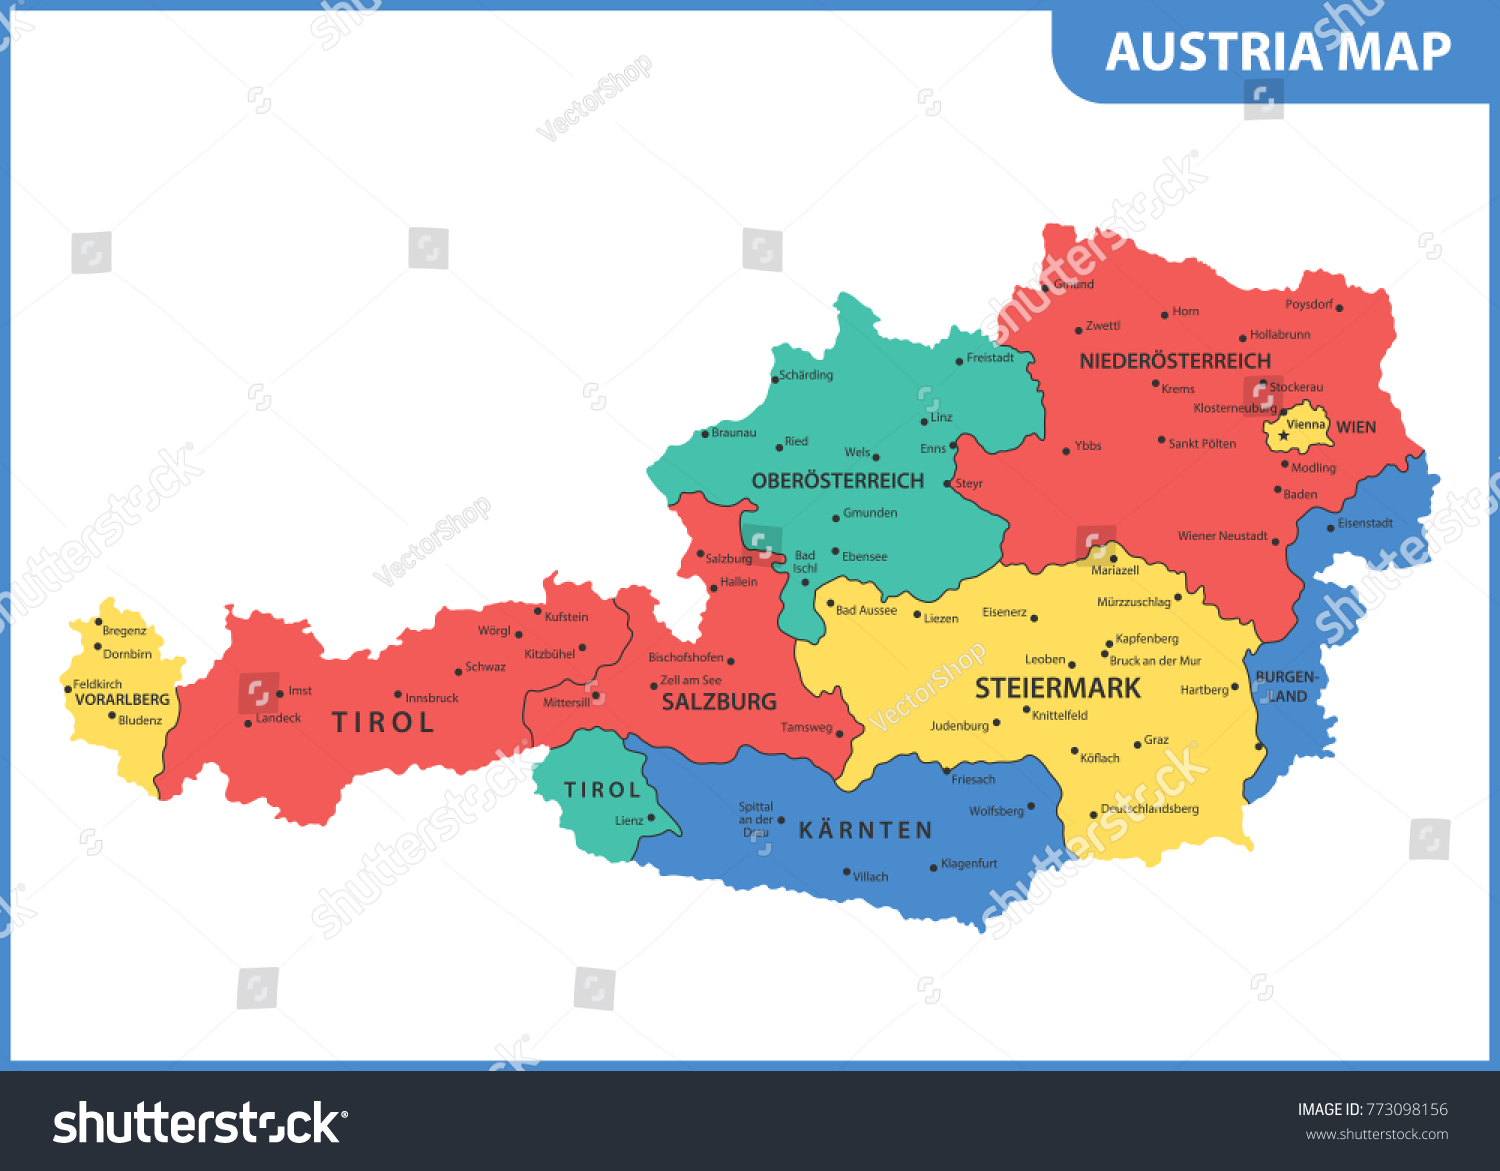 Detailed Map Austria Regions States Cities Stock Illustration